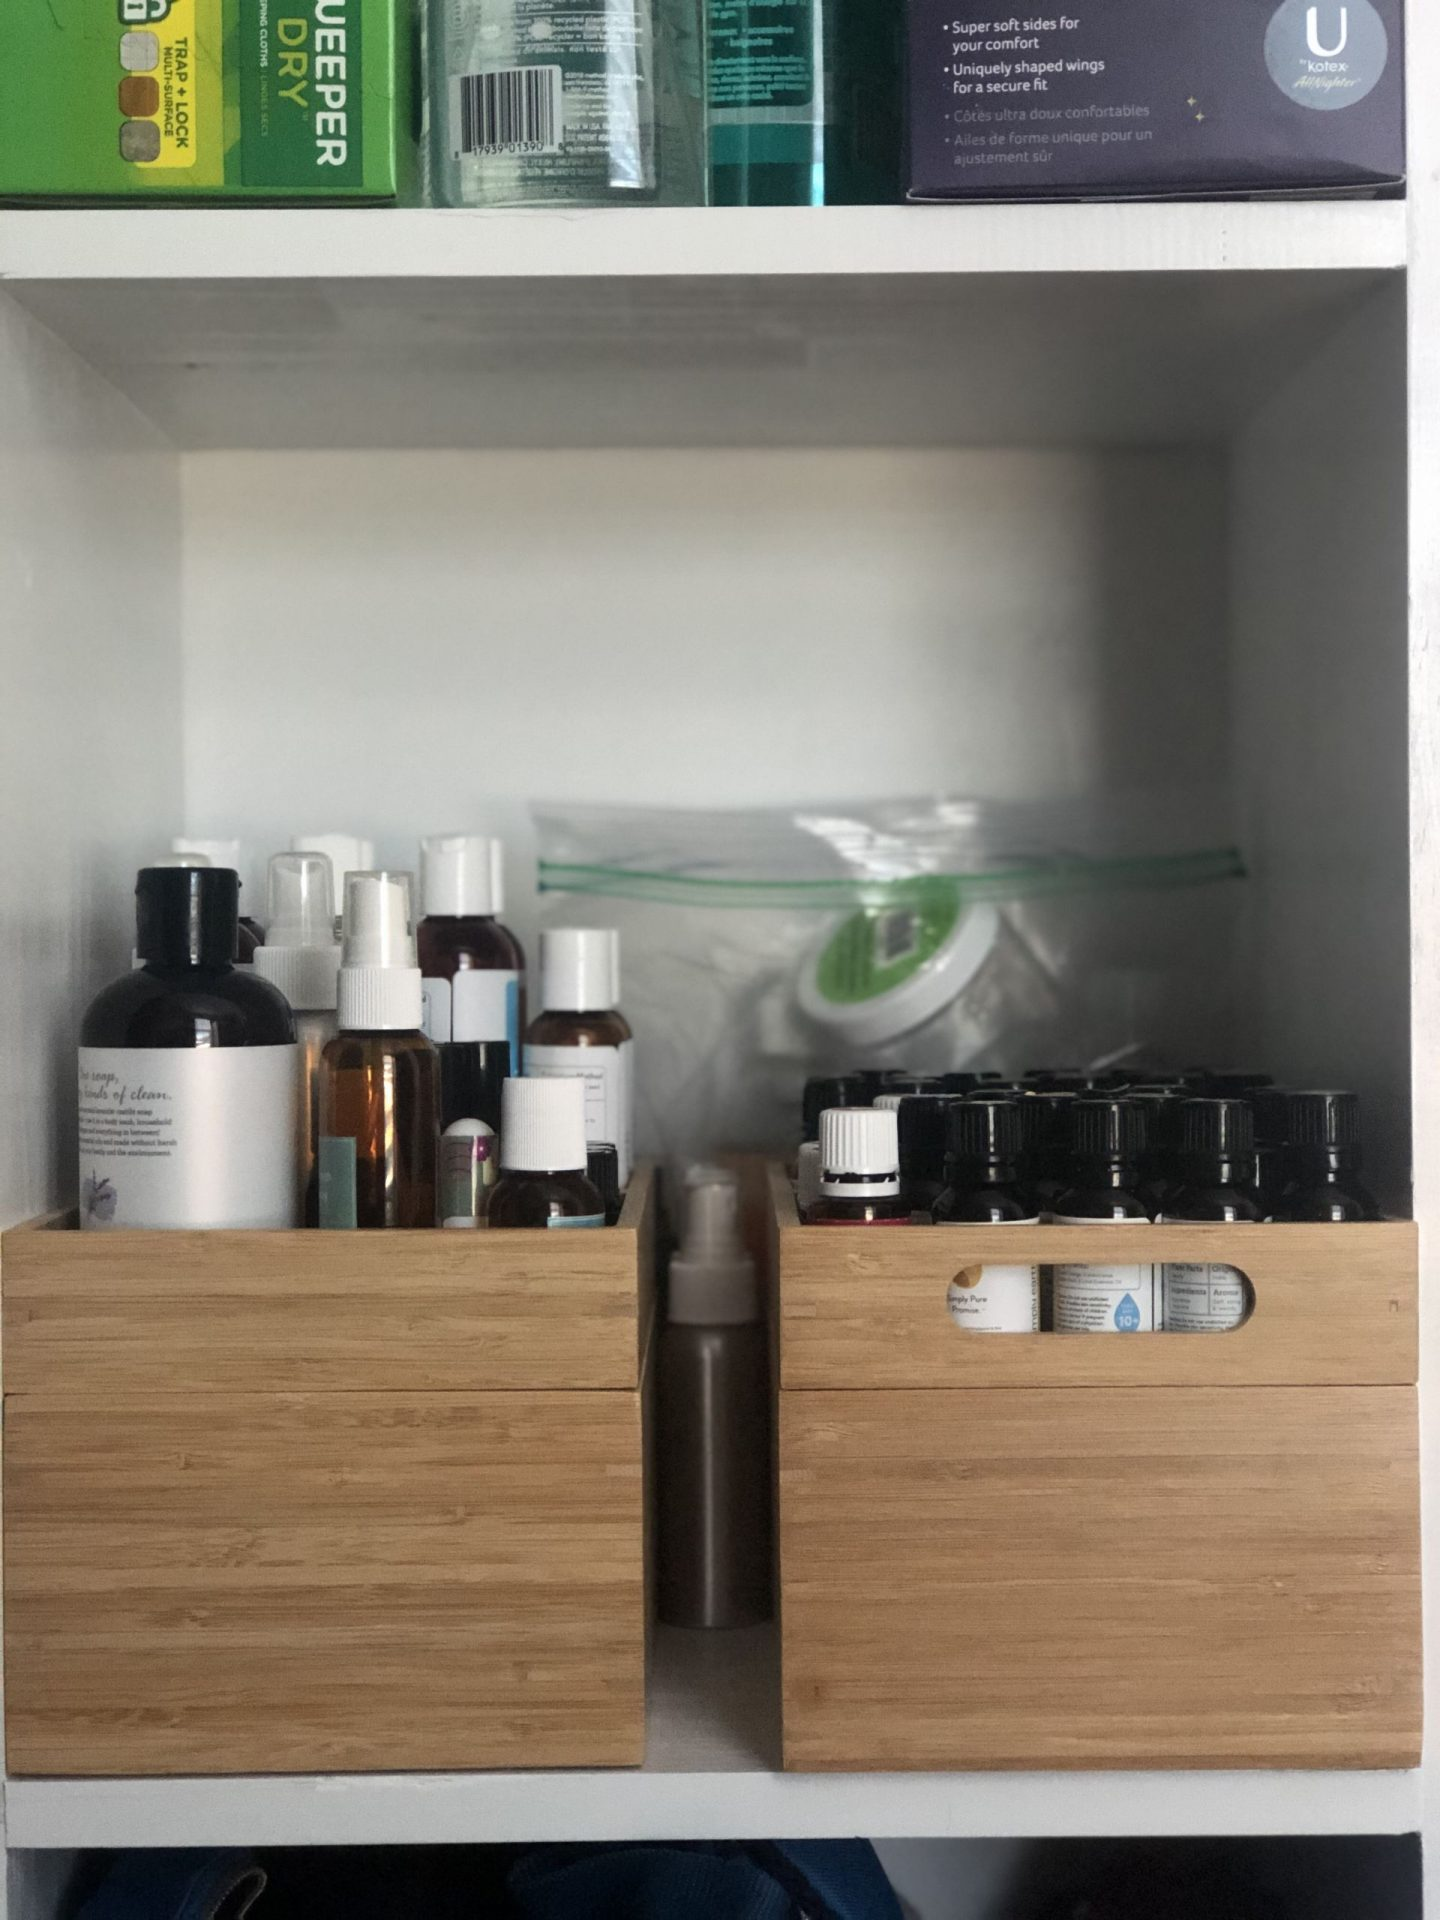 Popular NC blogger Rebecca Lately shares her essential oil organization. She has an extensive collection of oils and supplies. Check out her solution!